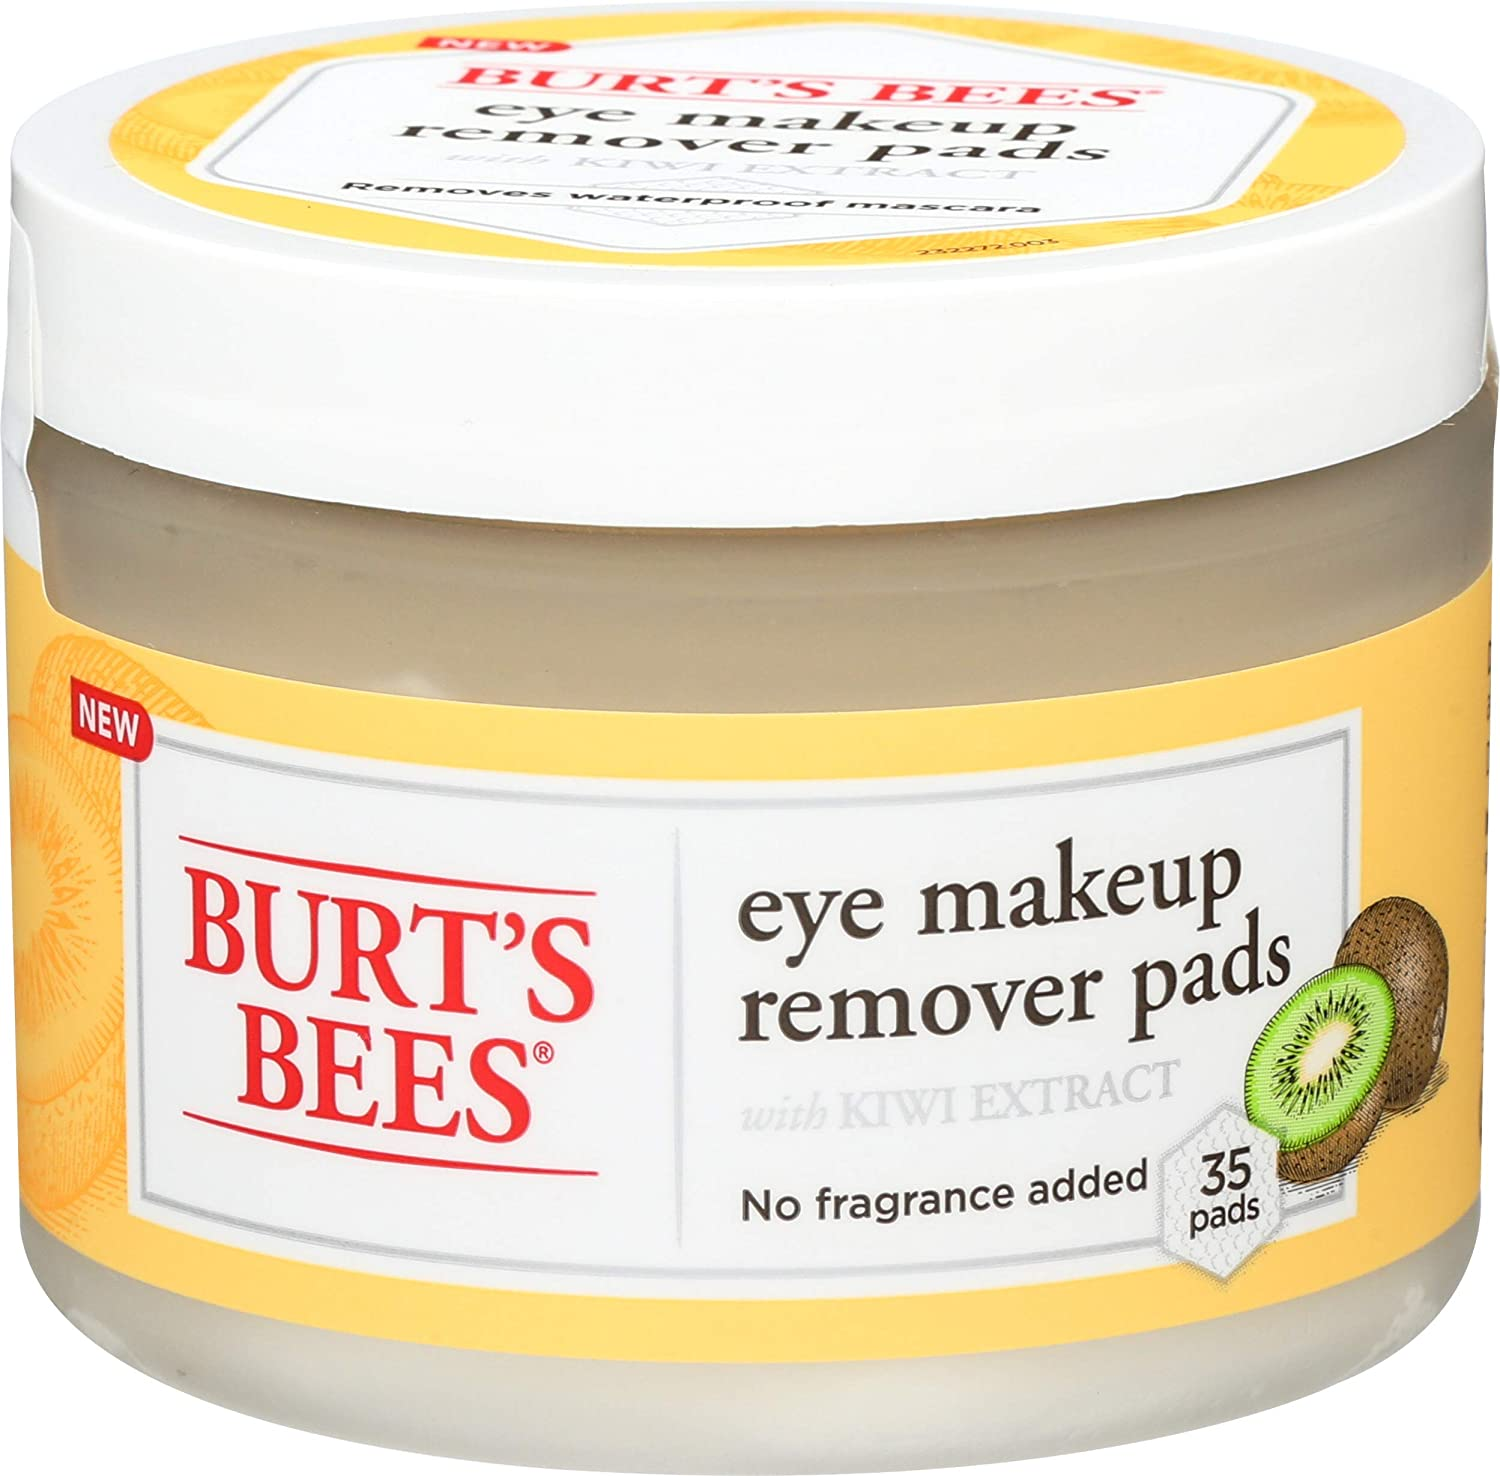 Burt's Bees Eye Makeup Remover Pads, 35 Count : Beauty & Personal Care